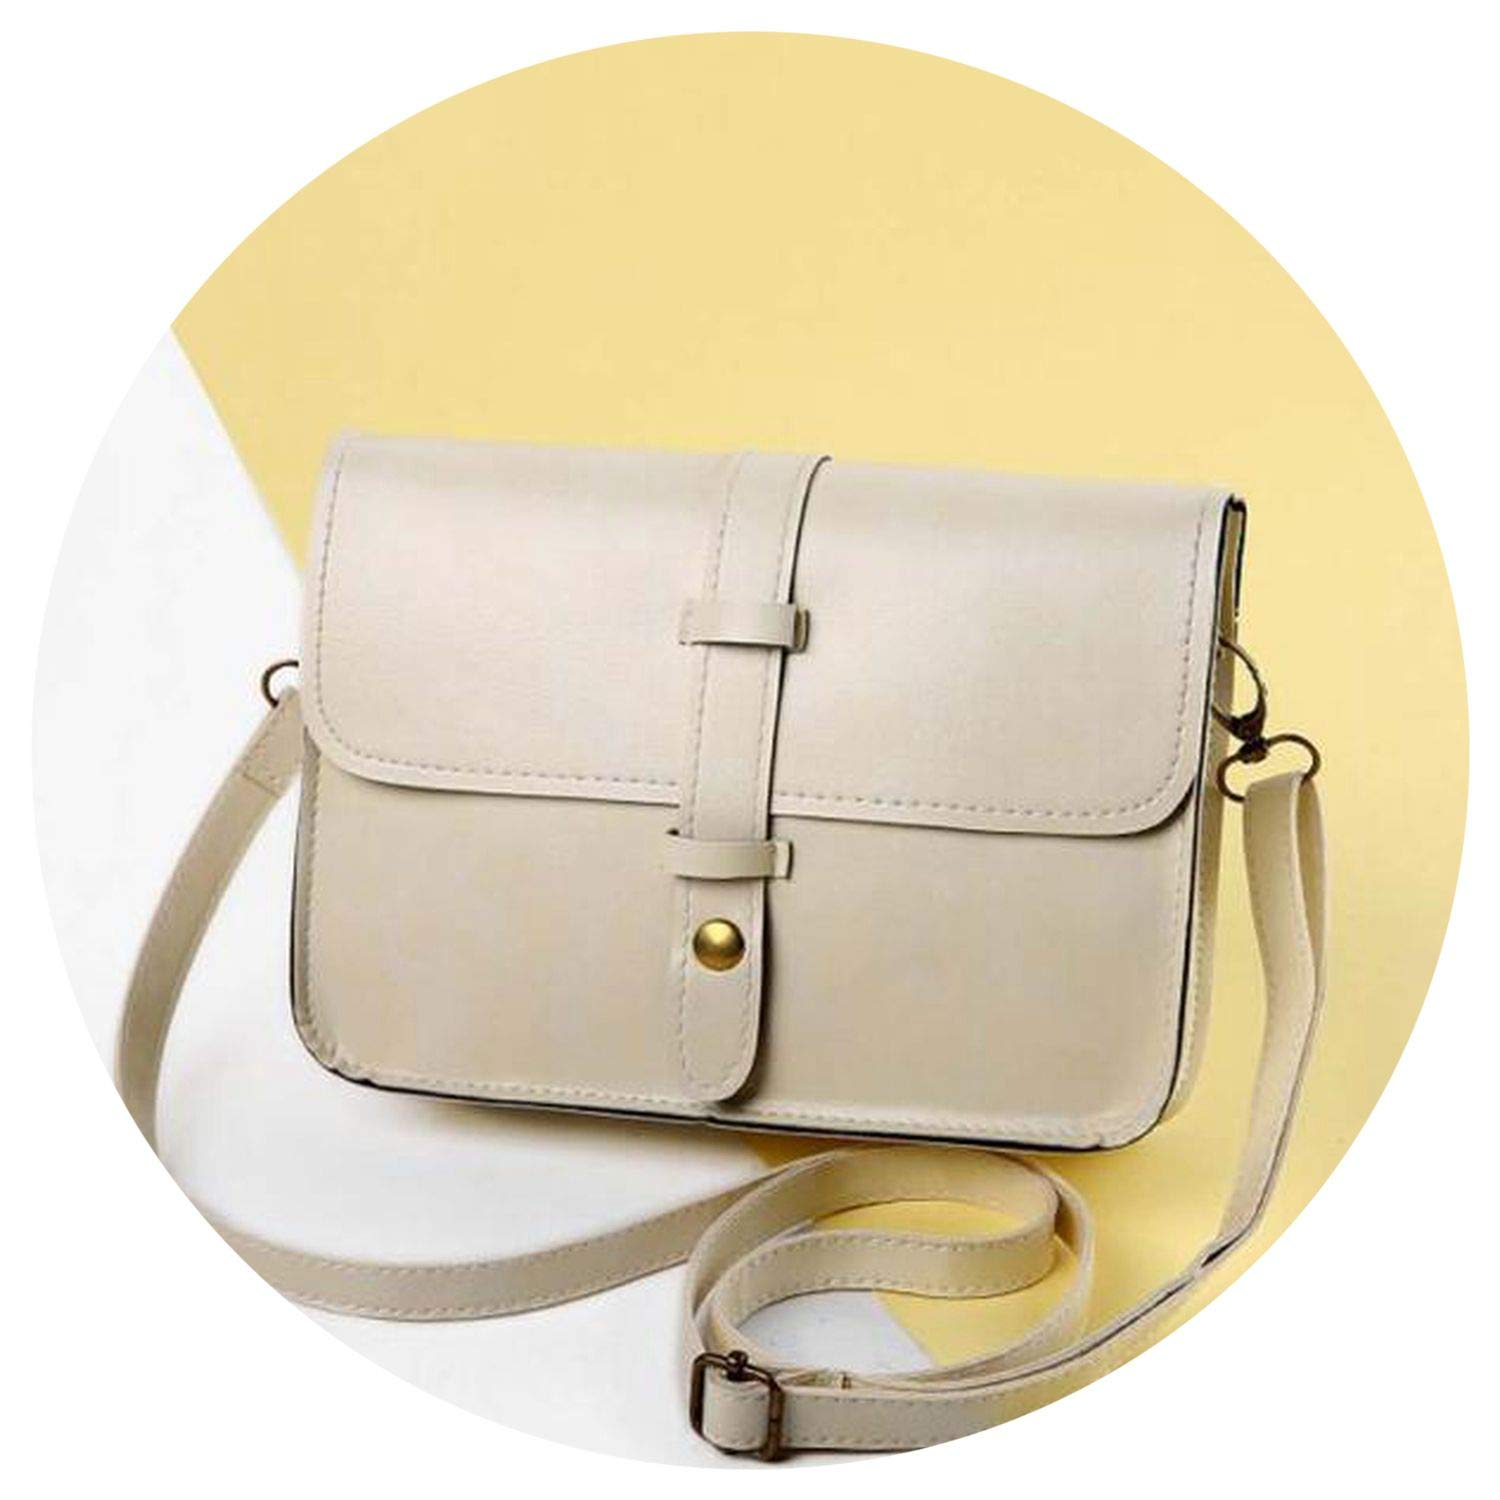 s s leather Shoulder Bags s Rivet Purse fe bolsas, Beige ...